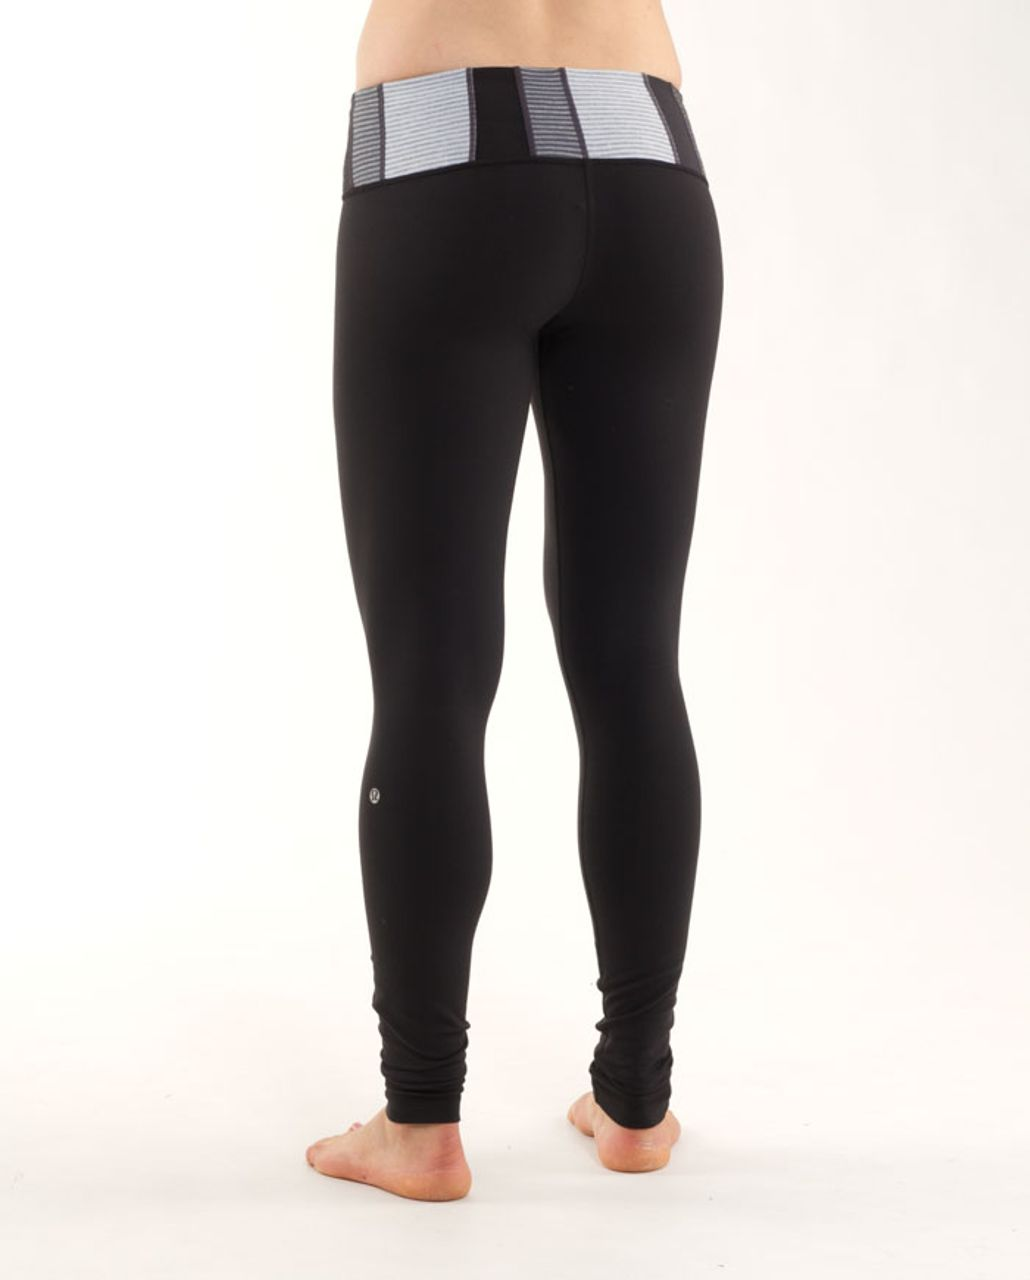 Lululemon Wunder Under Pant (First Release) - Black /  Quilting Winter 12